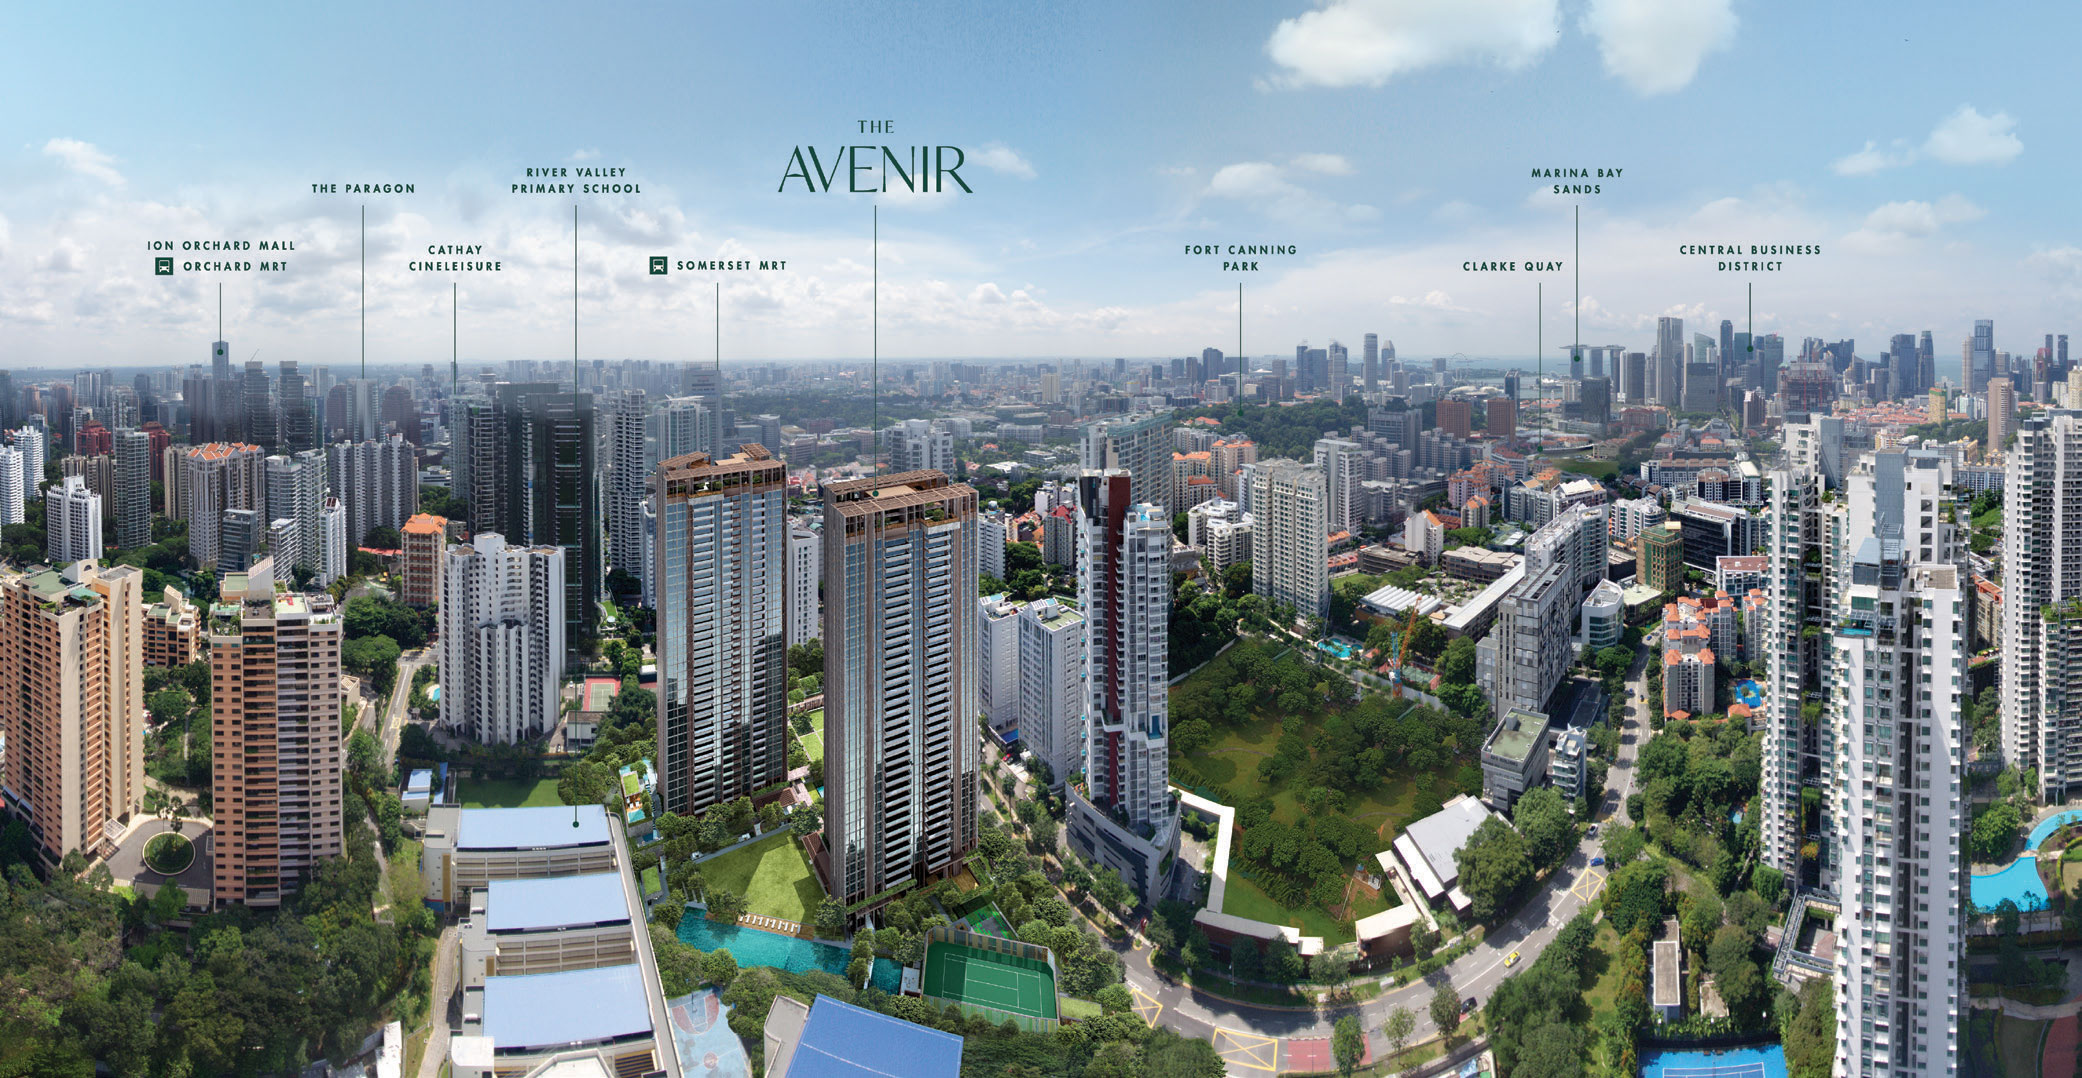 The Avenir Aerial Location Map by Jessica Siow